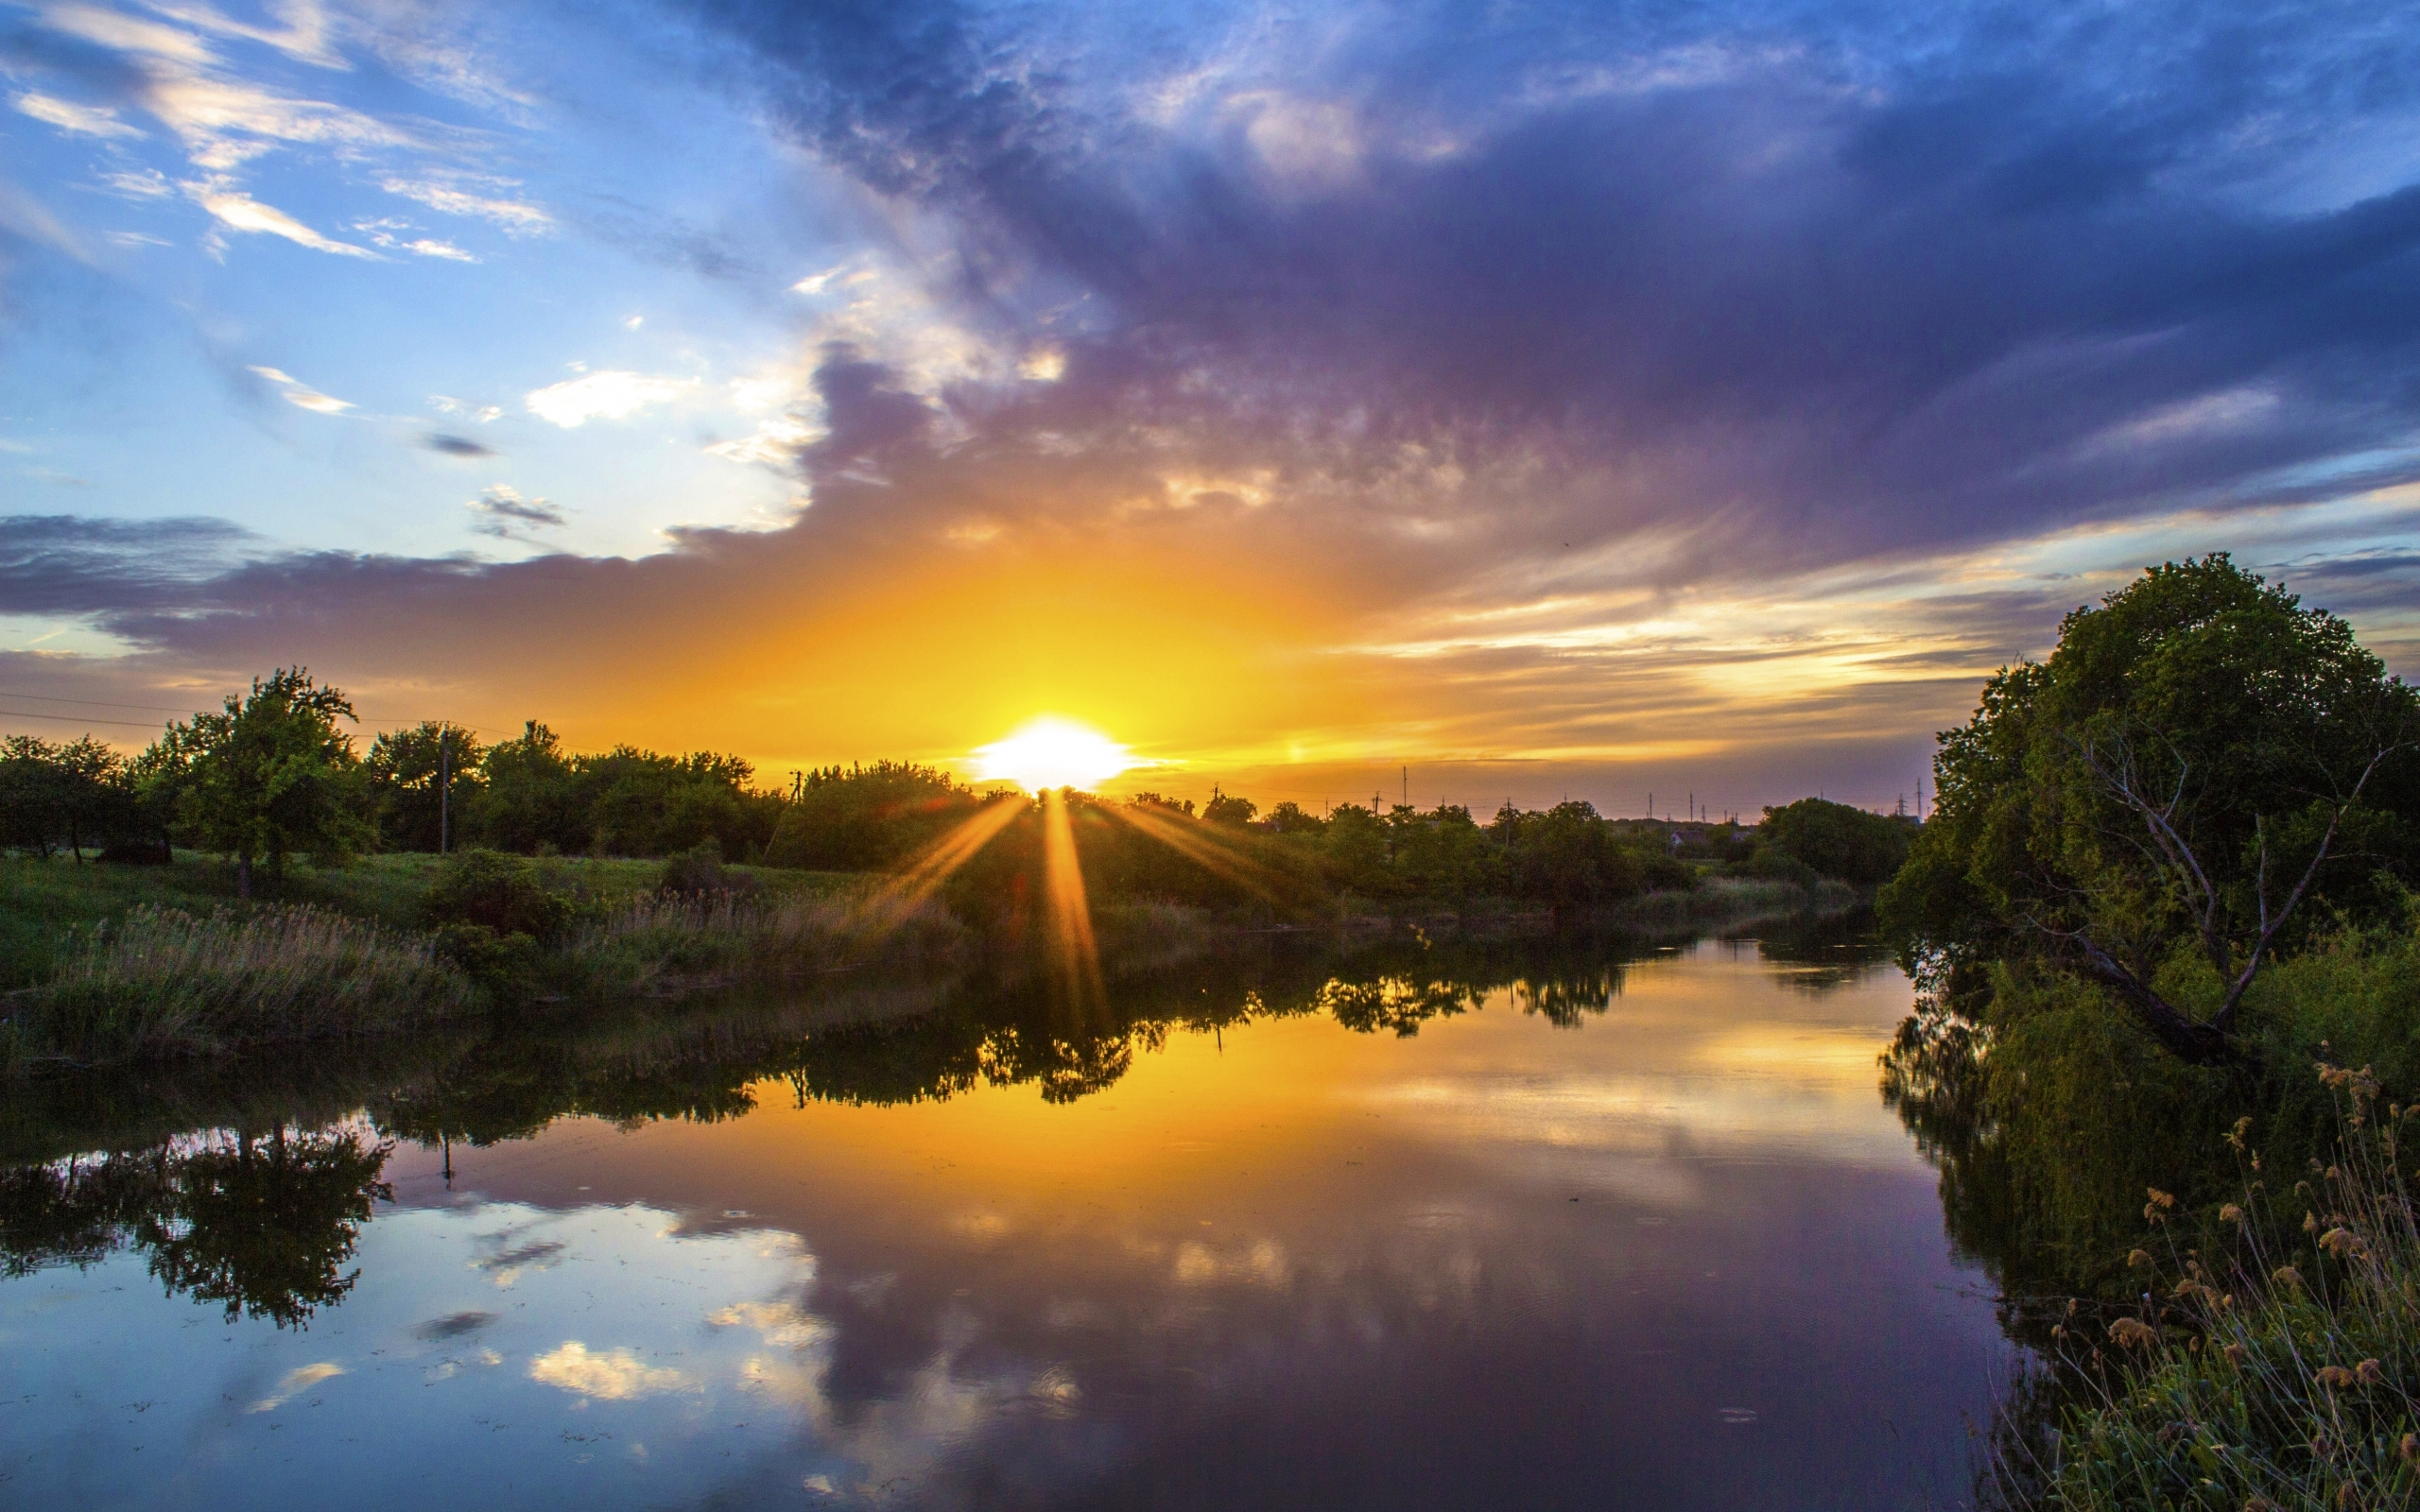 27272 download wallpaper Landscape, Rivers, Sunset, Sky, Clouds screensavers and pictures for free